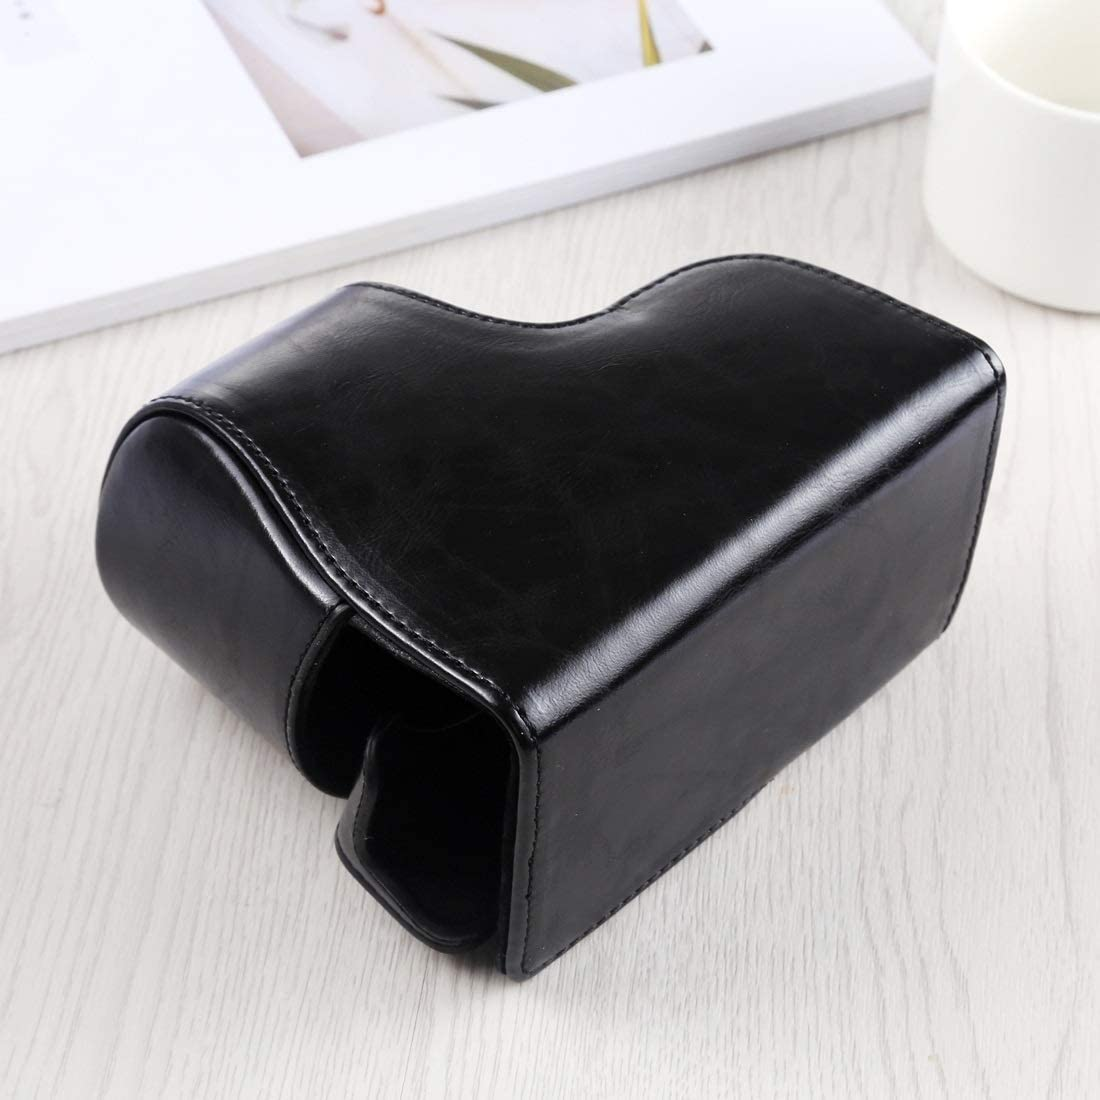 ILCE-A6400 Color : Black ZQ House Full Body Camera PU Leather Case Bag with Strap for Sony A6400